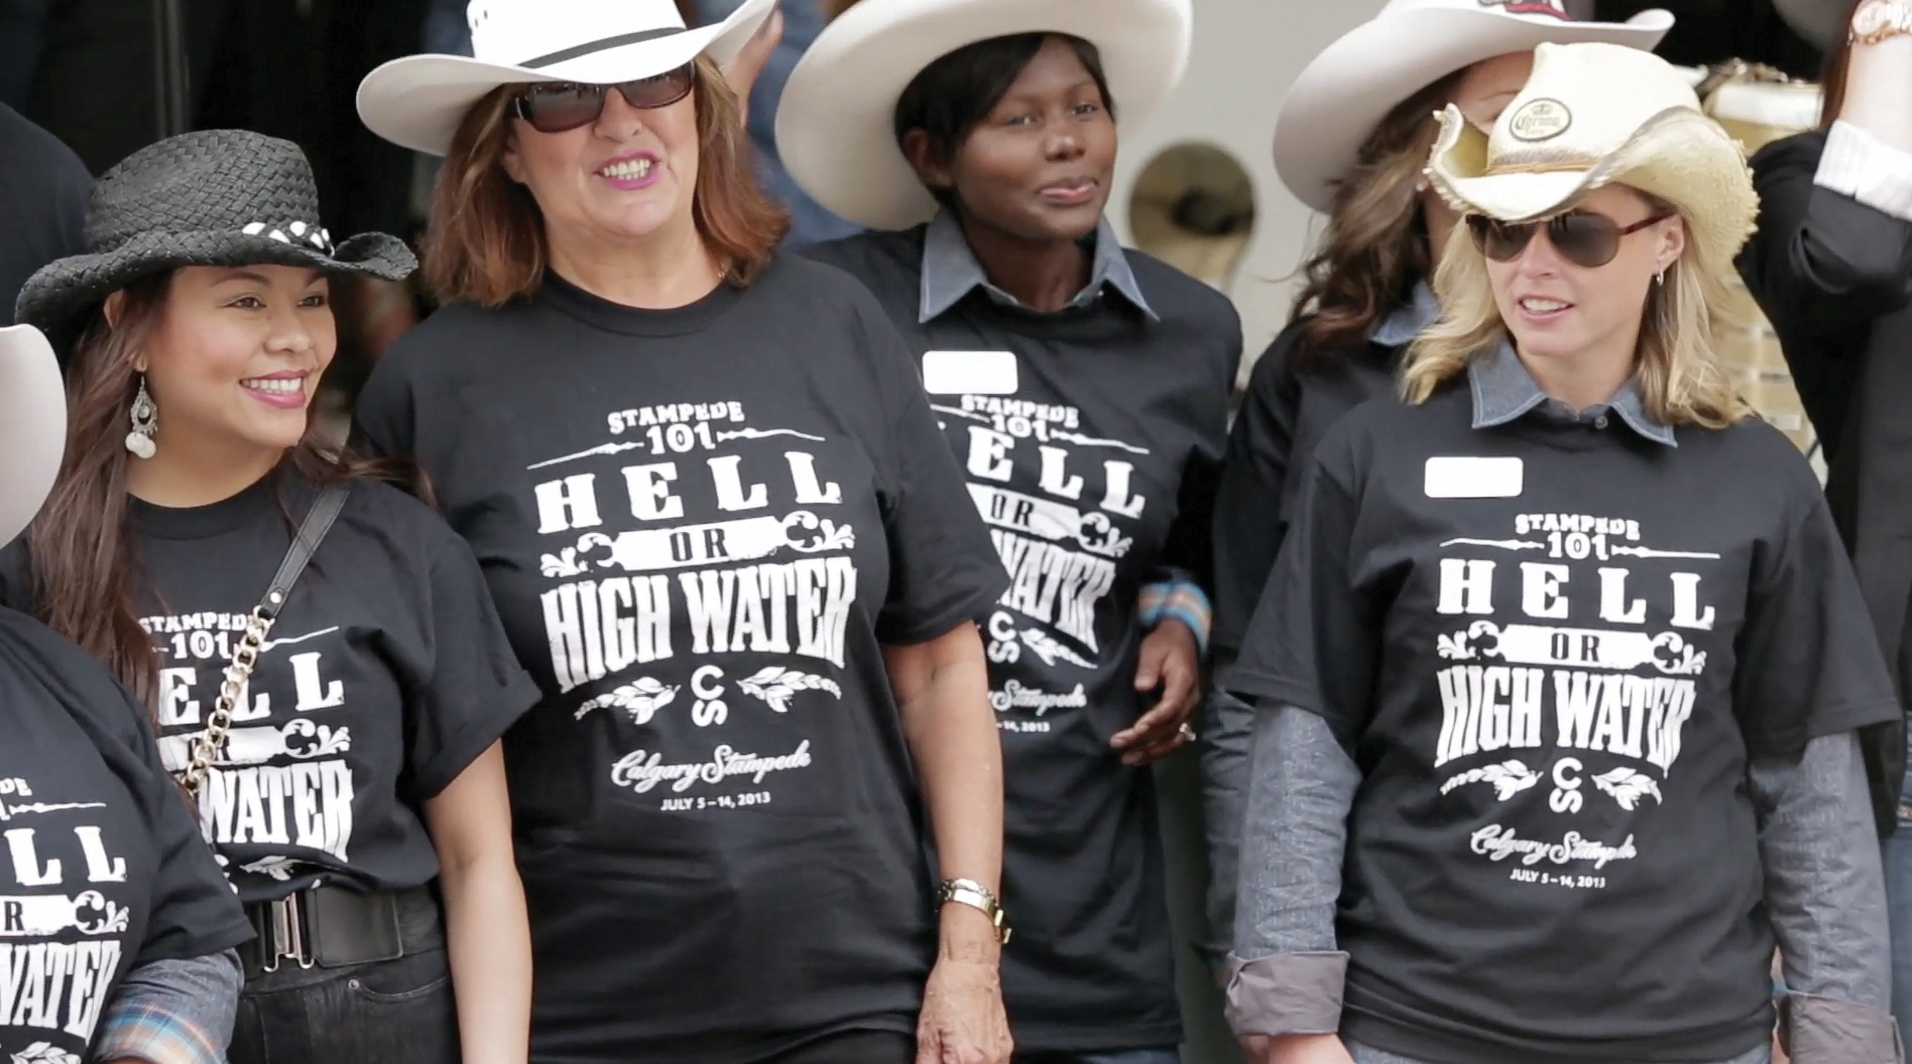 """Damage from Calgary's 2013 flood caused concerns that the annual Stampede might be put on hold. Working with the festival's organizers, the agency created a line of t-shirts emblazoned with the slogan """"Hell or High Water"""" to aid with disaster relief. In the end, the shirts helped raise more than $2 million."""